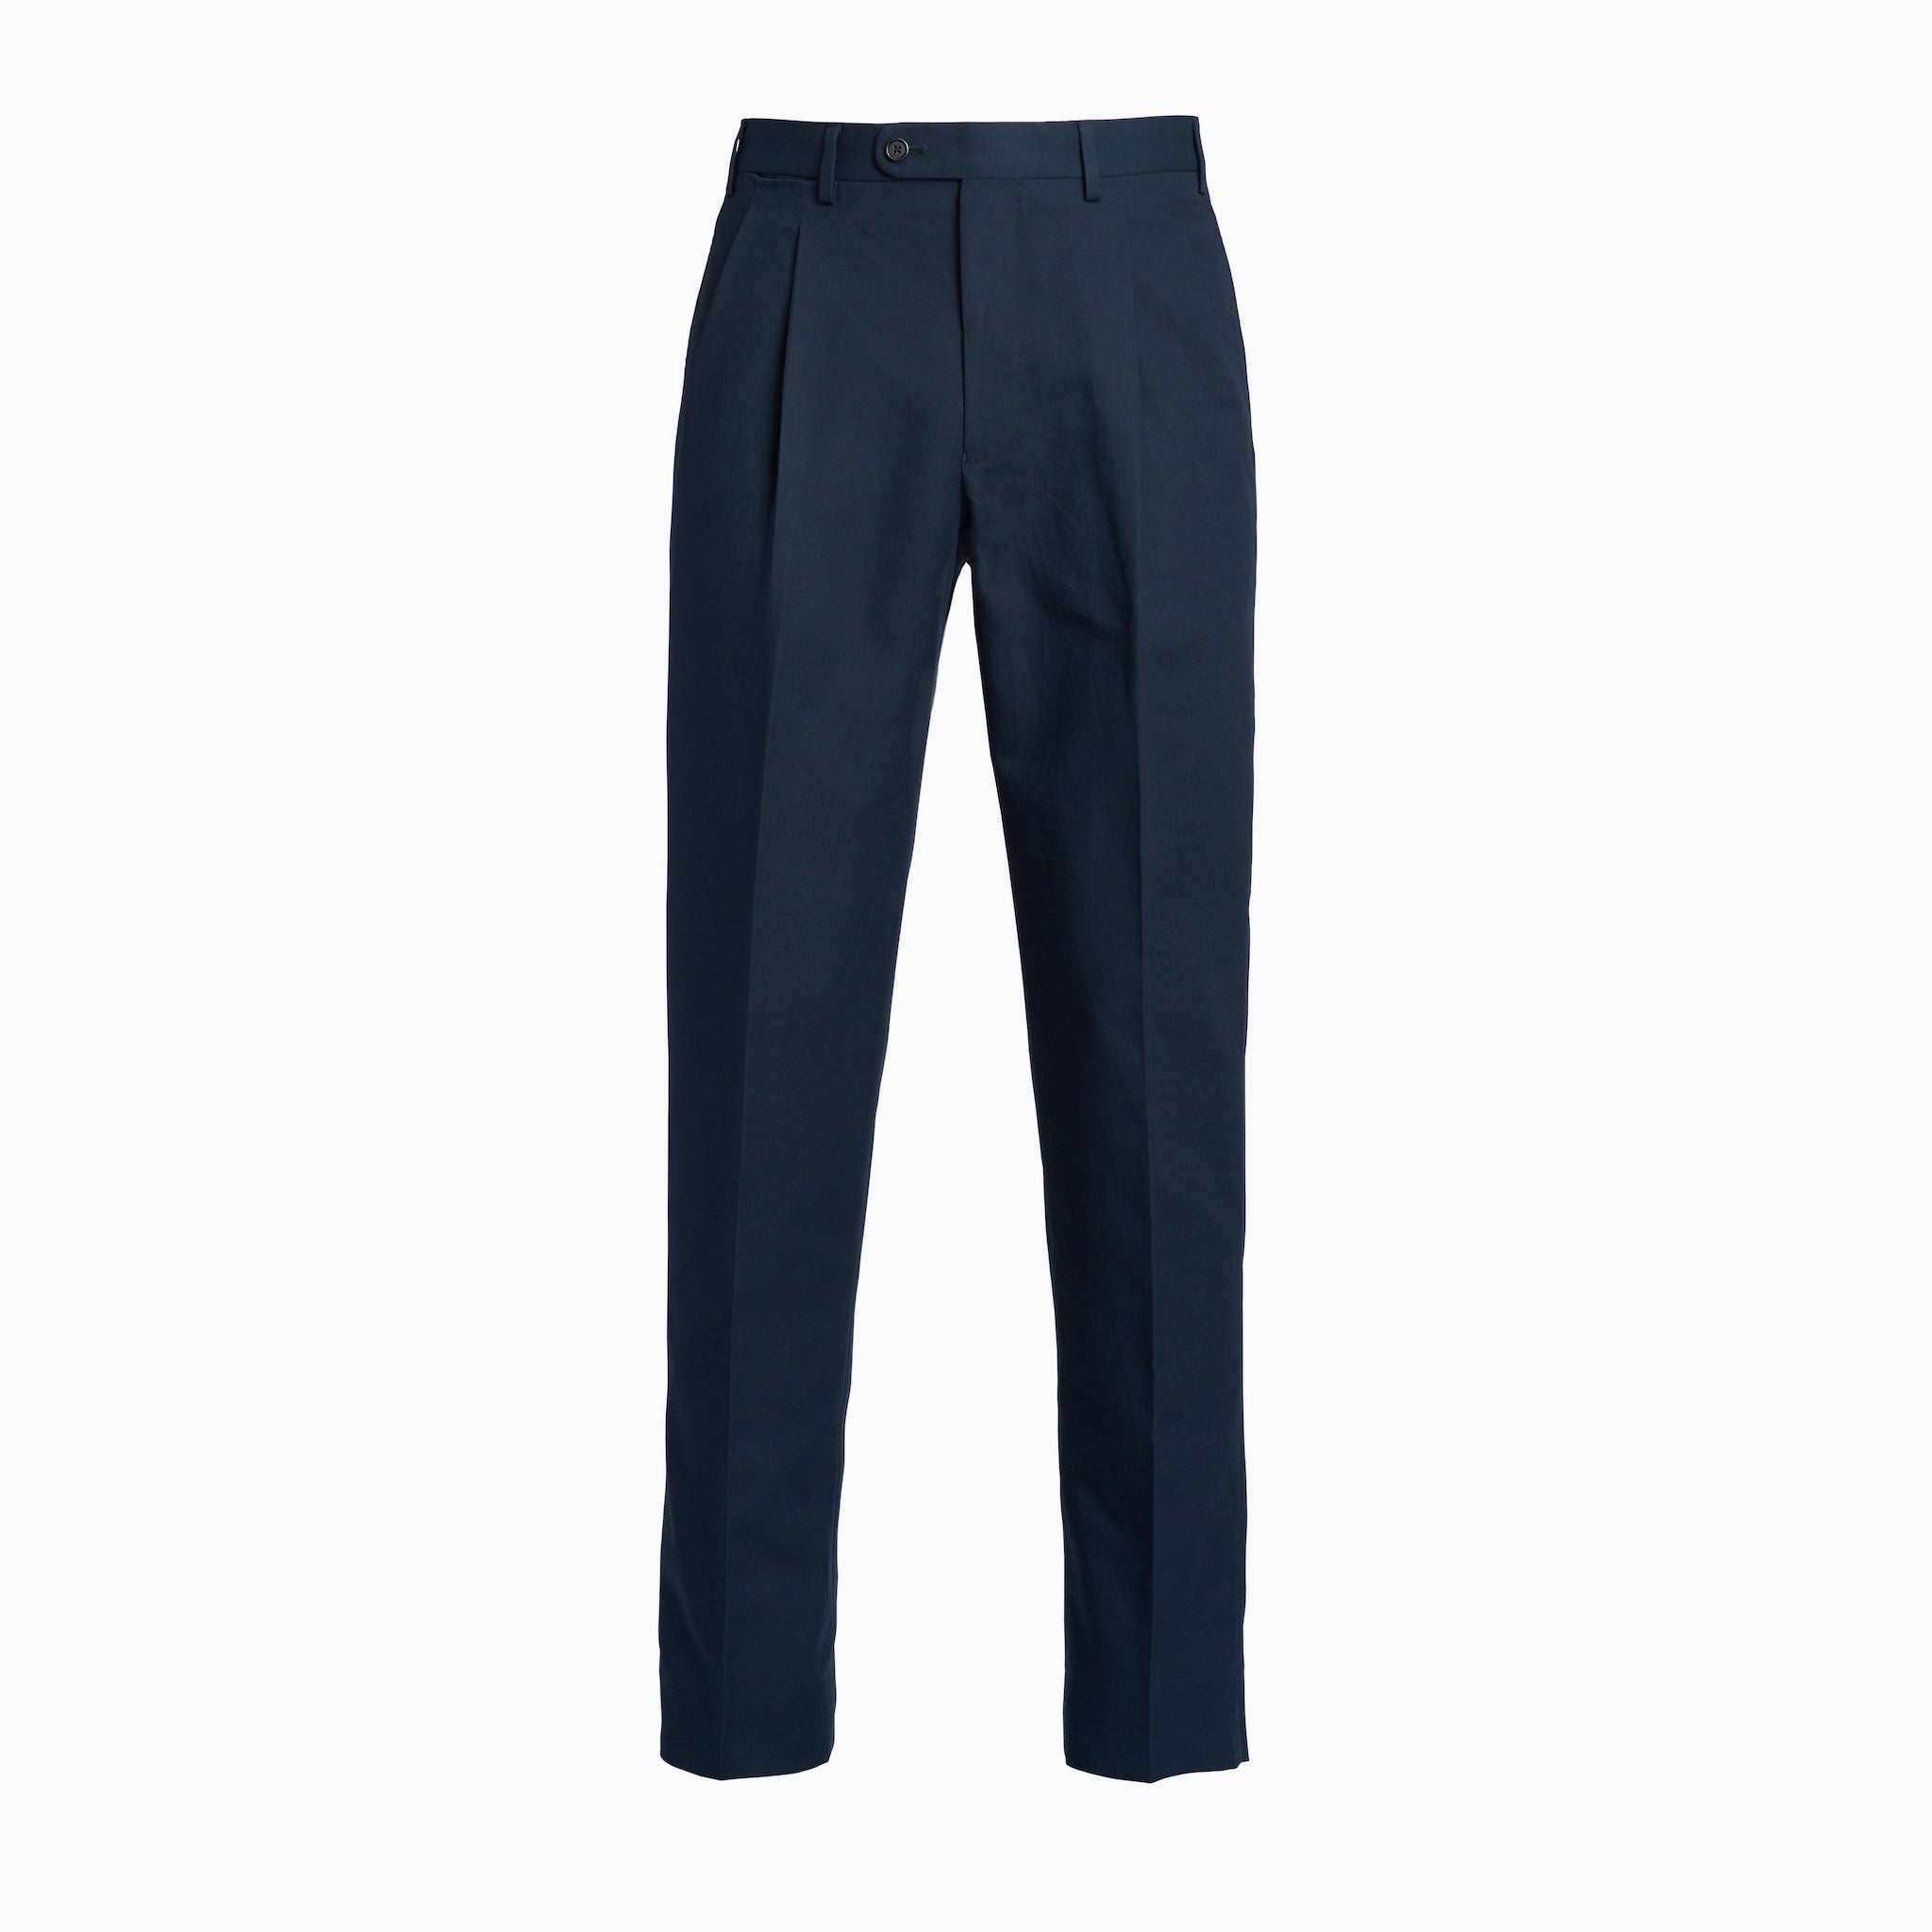 Navy Fine Gabardine Cotton Trousers w/ Double Pleat